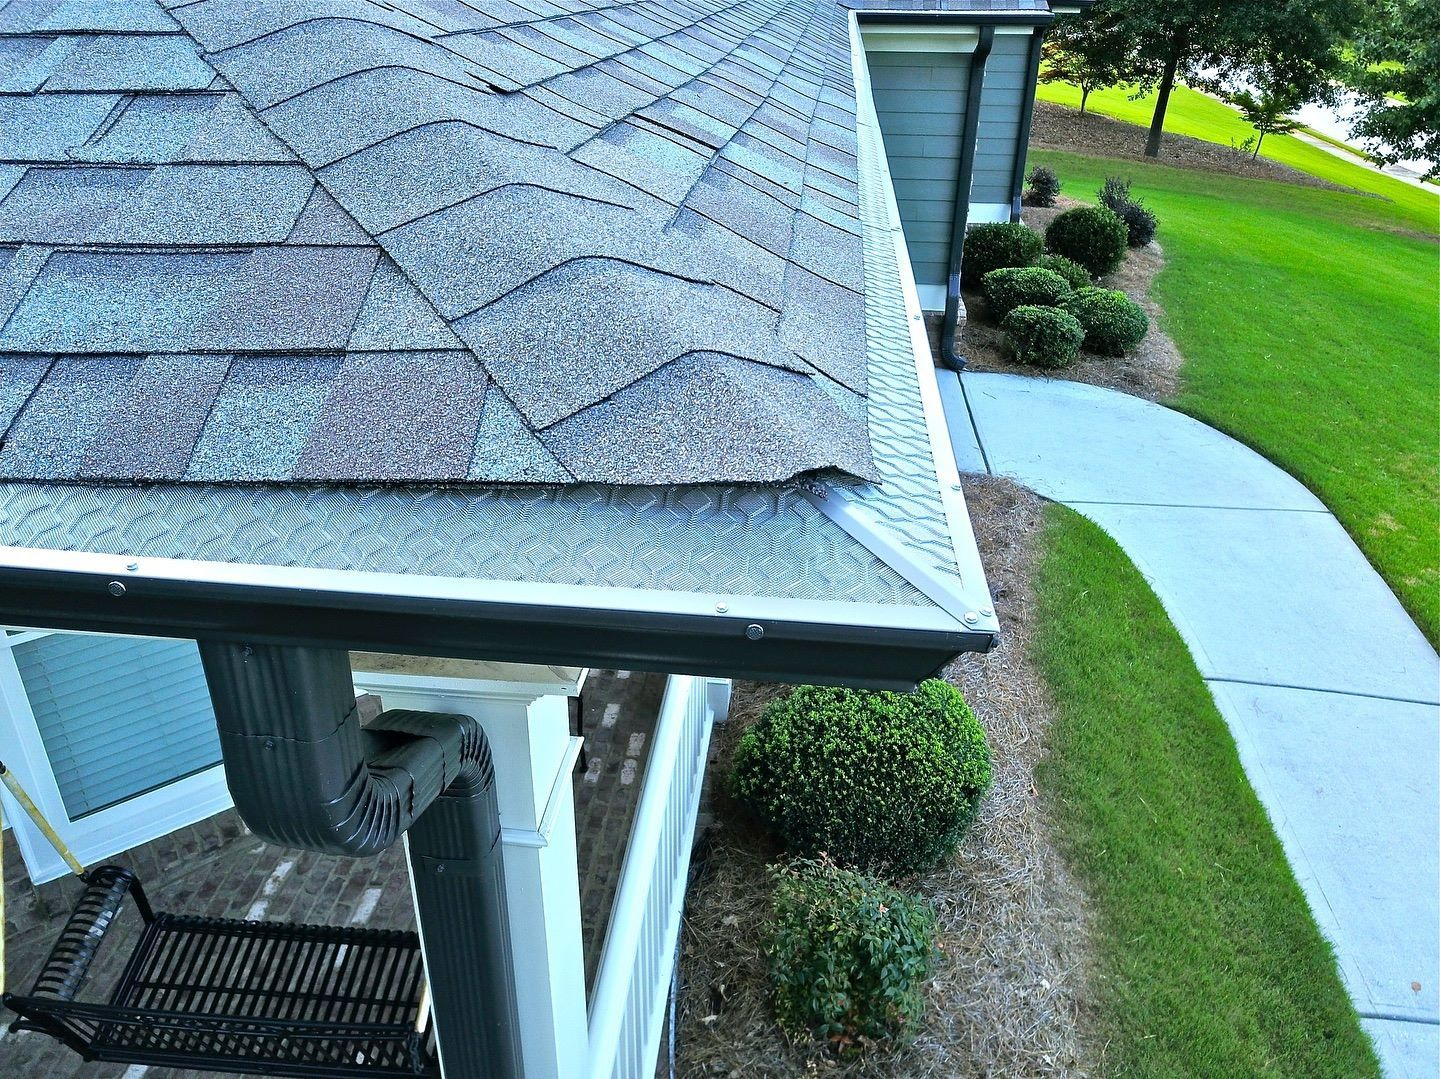 Take Gutter Cleaning Off Of Your Spring Cleaning List Gutter Protection Gutter Guard Cleaning Gutters